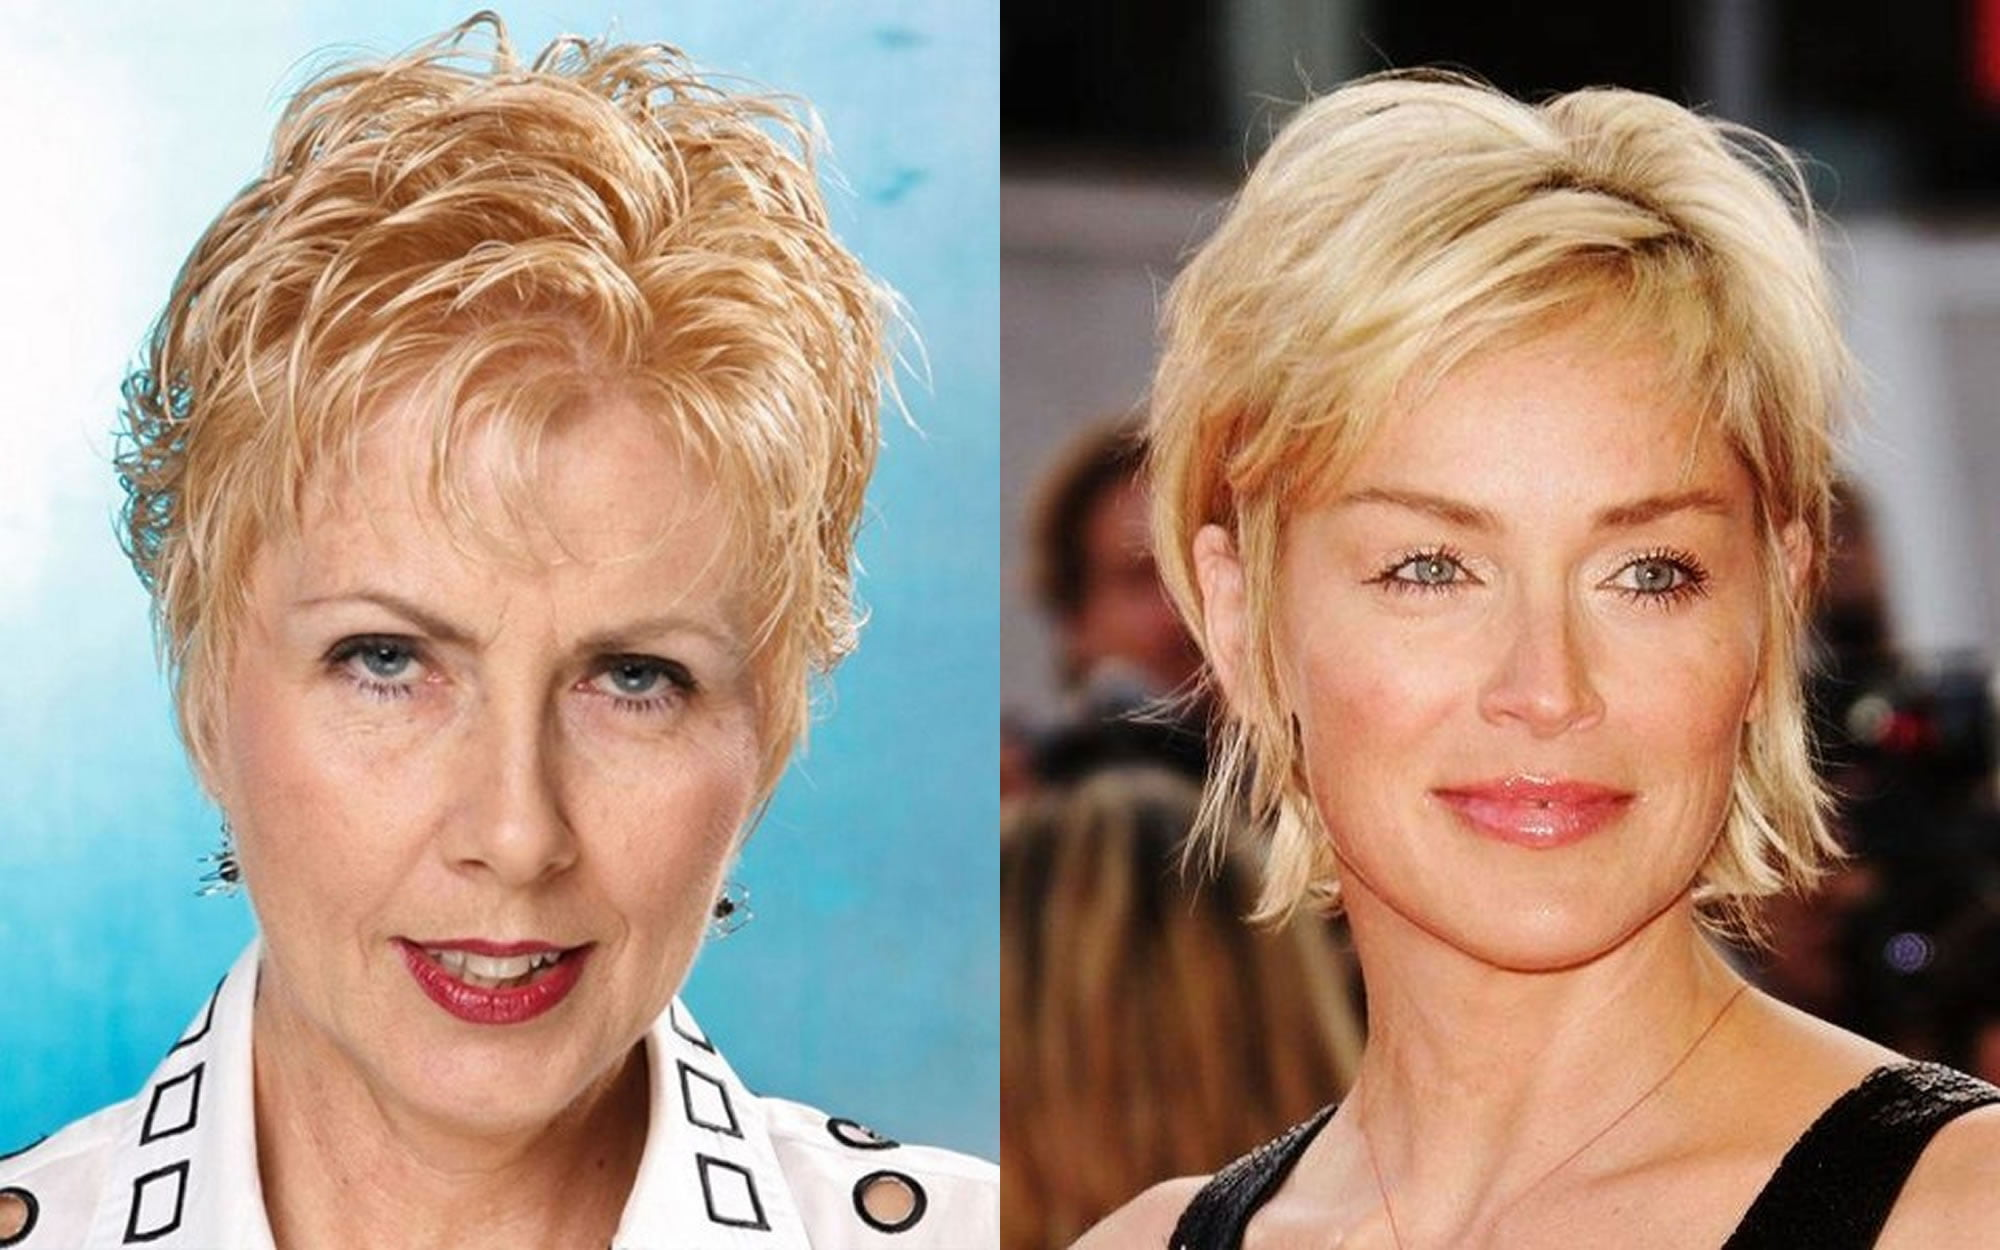 Hairstyles Over 40 2019: Short Haircut Images For Older Women & Pixie+Bob Fine Hair